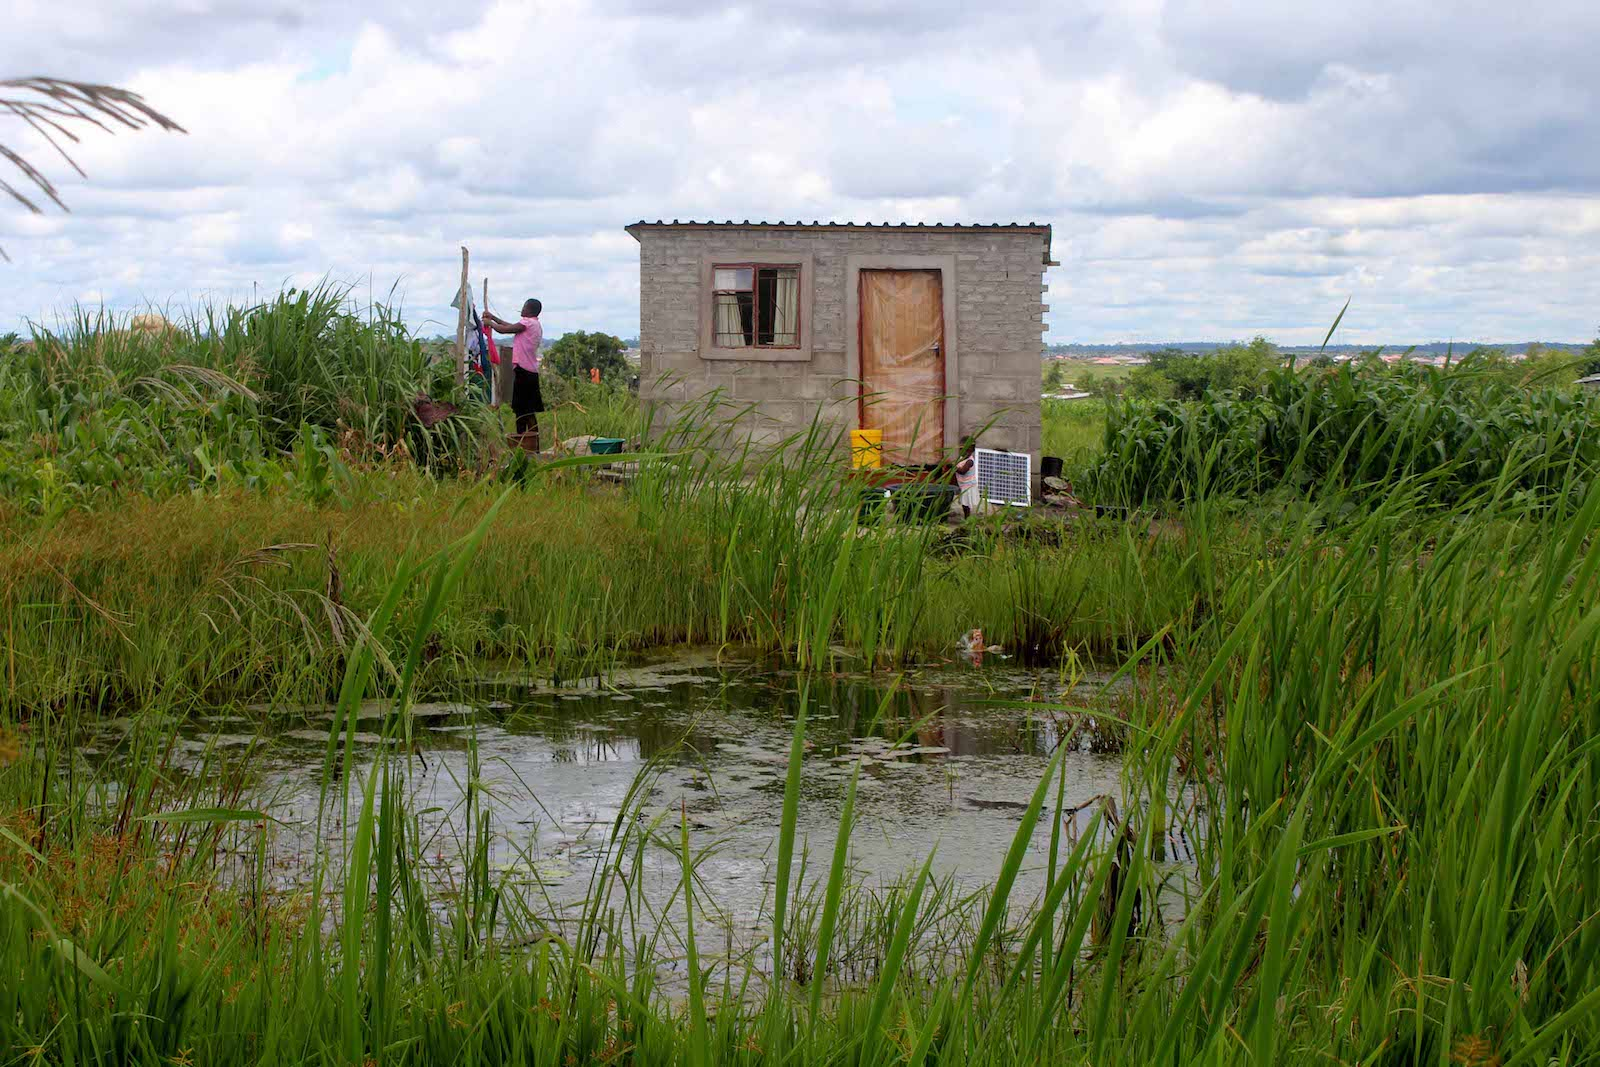 Wetlands Structure Demolitions: Much Behind the Smokescreen